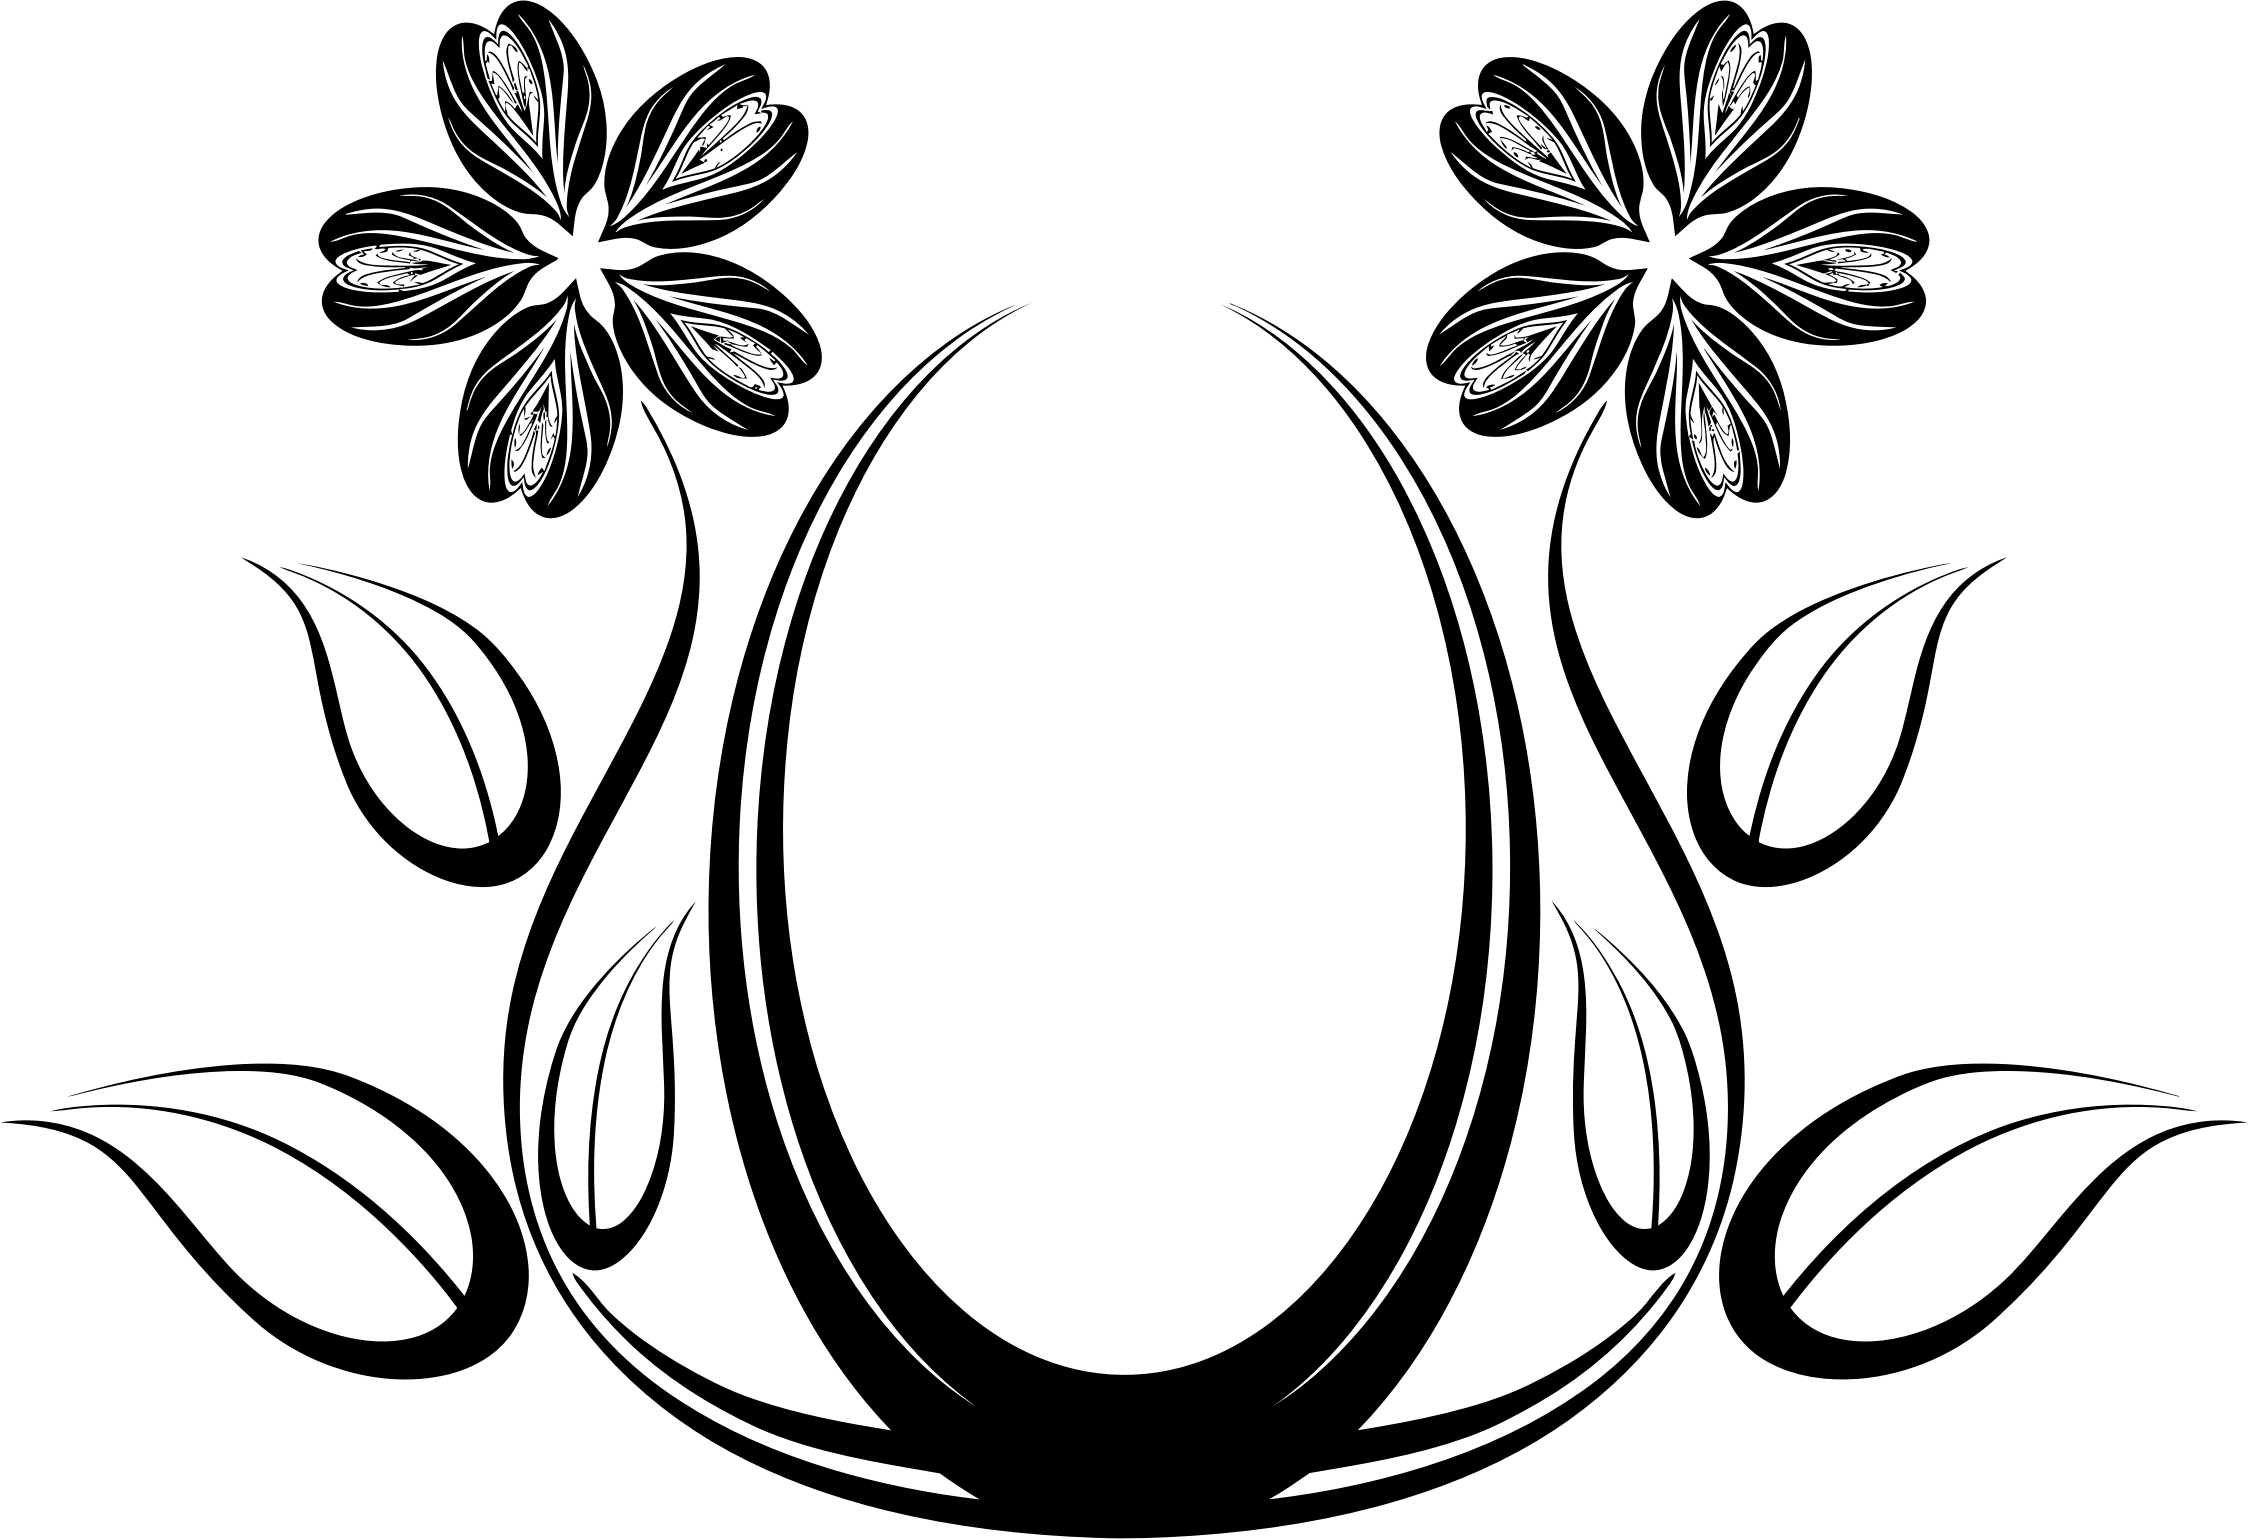 Clipart black and white flower design jpg black and white download Silhouette Flower Designs at GetDrawings.com | Free for personal use ... jpg black and white download